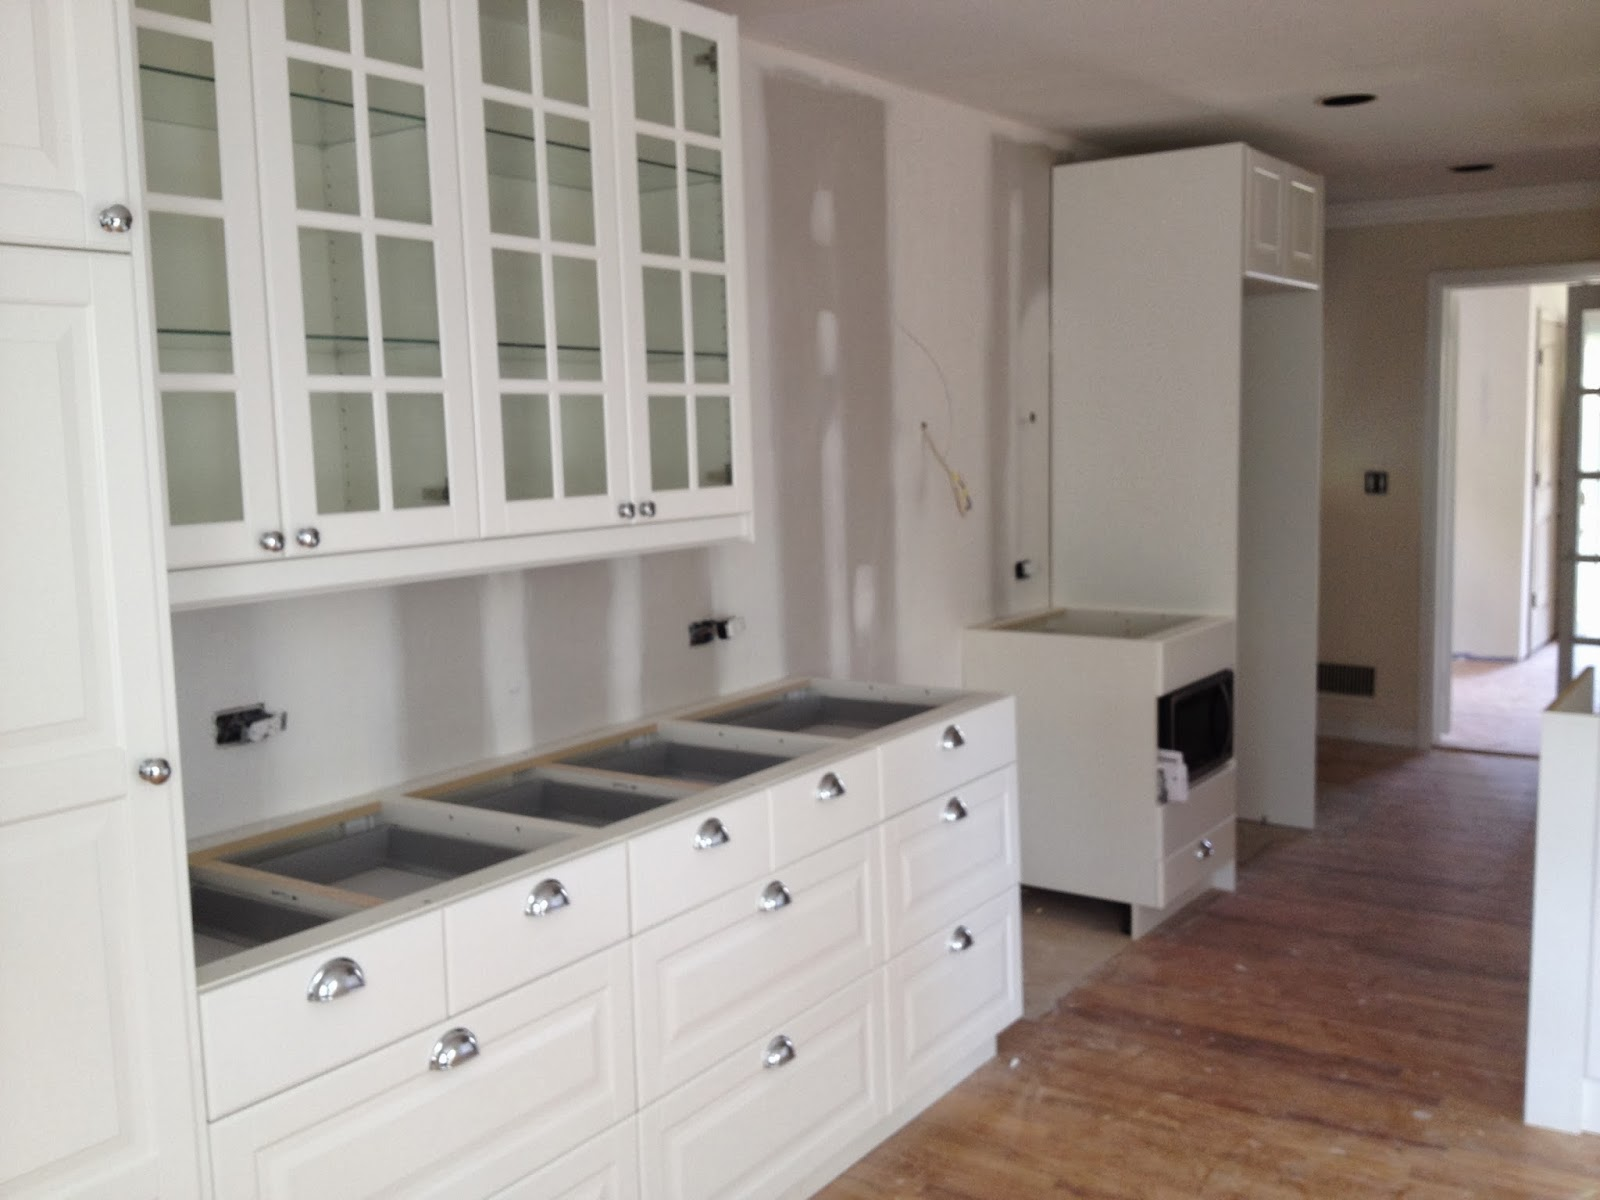 Pictures Of Ikea Kitchens Installed